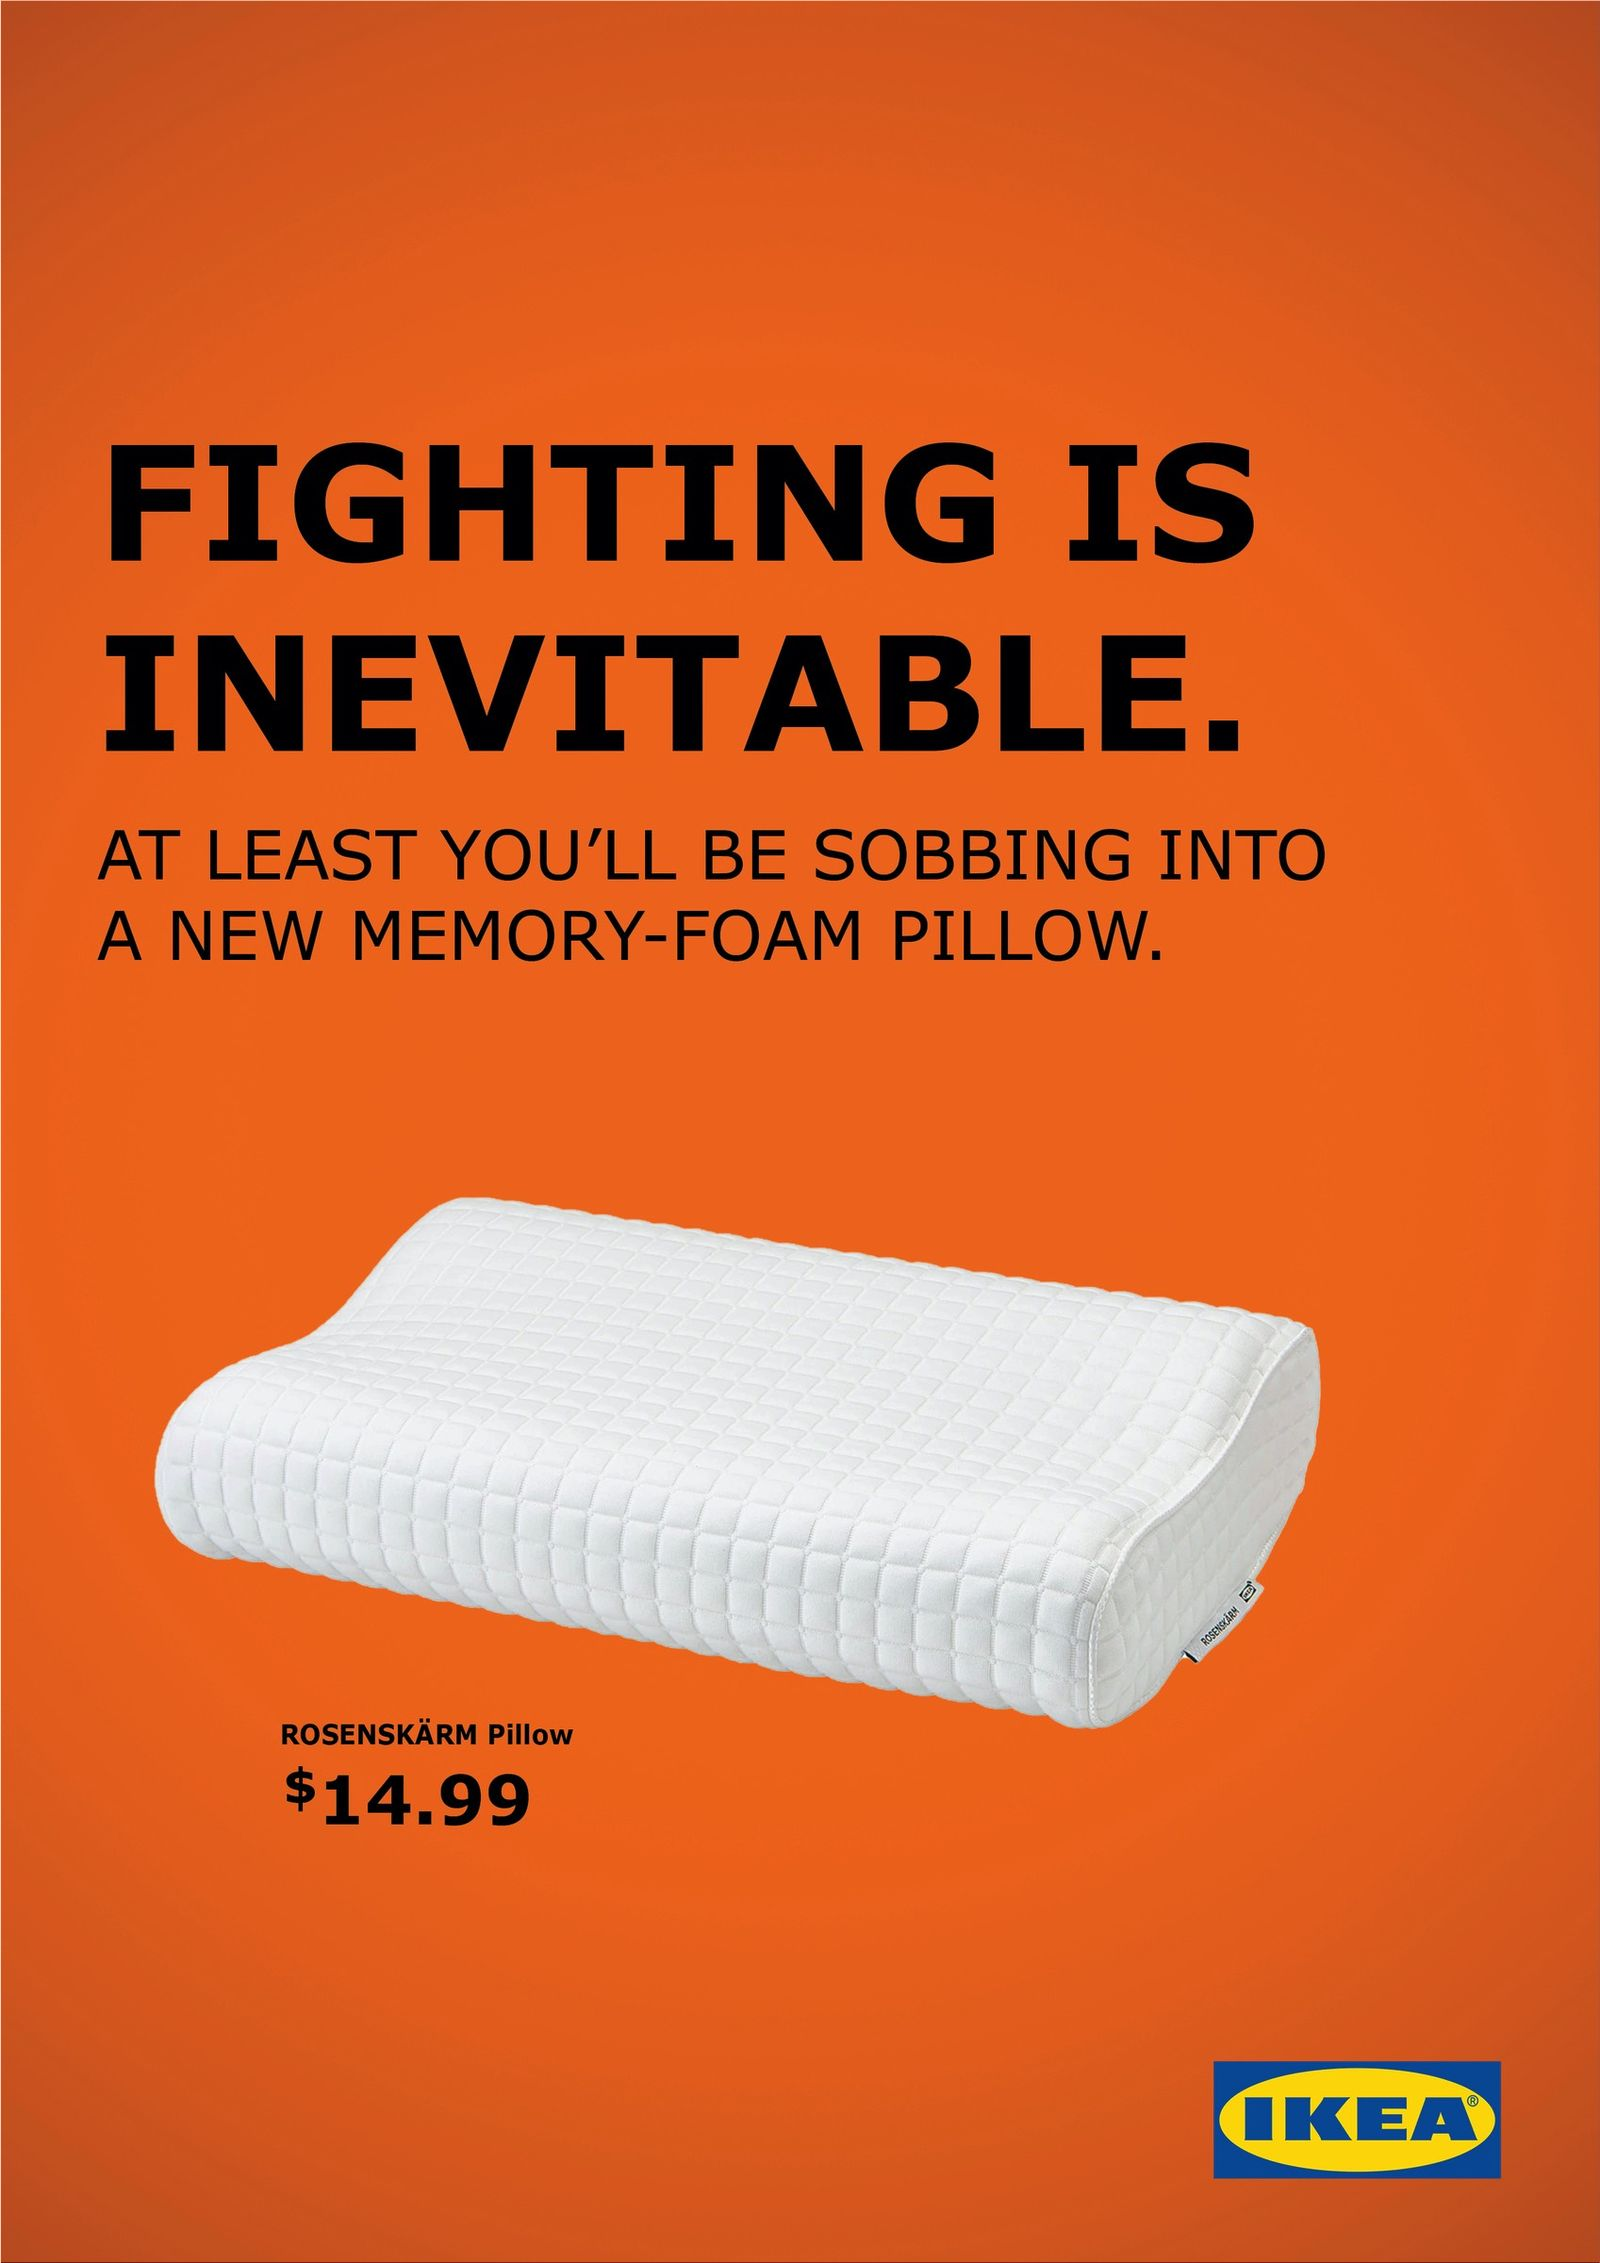 Miami Ad School promotes IKEA products with things that couples do after a fight